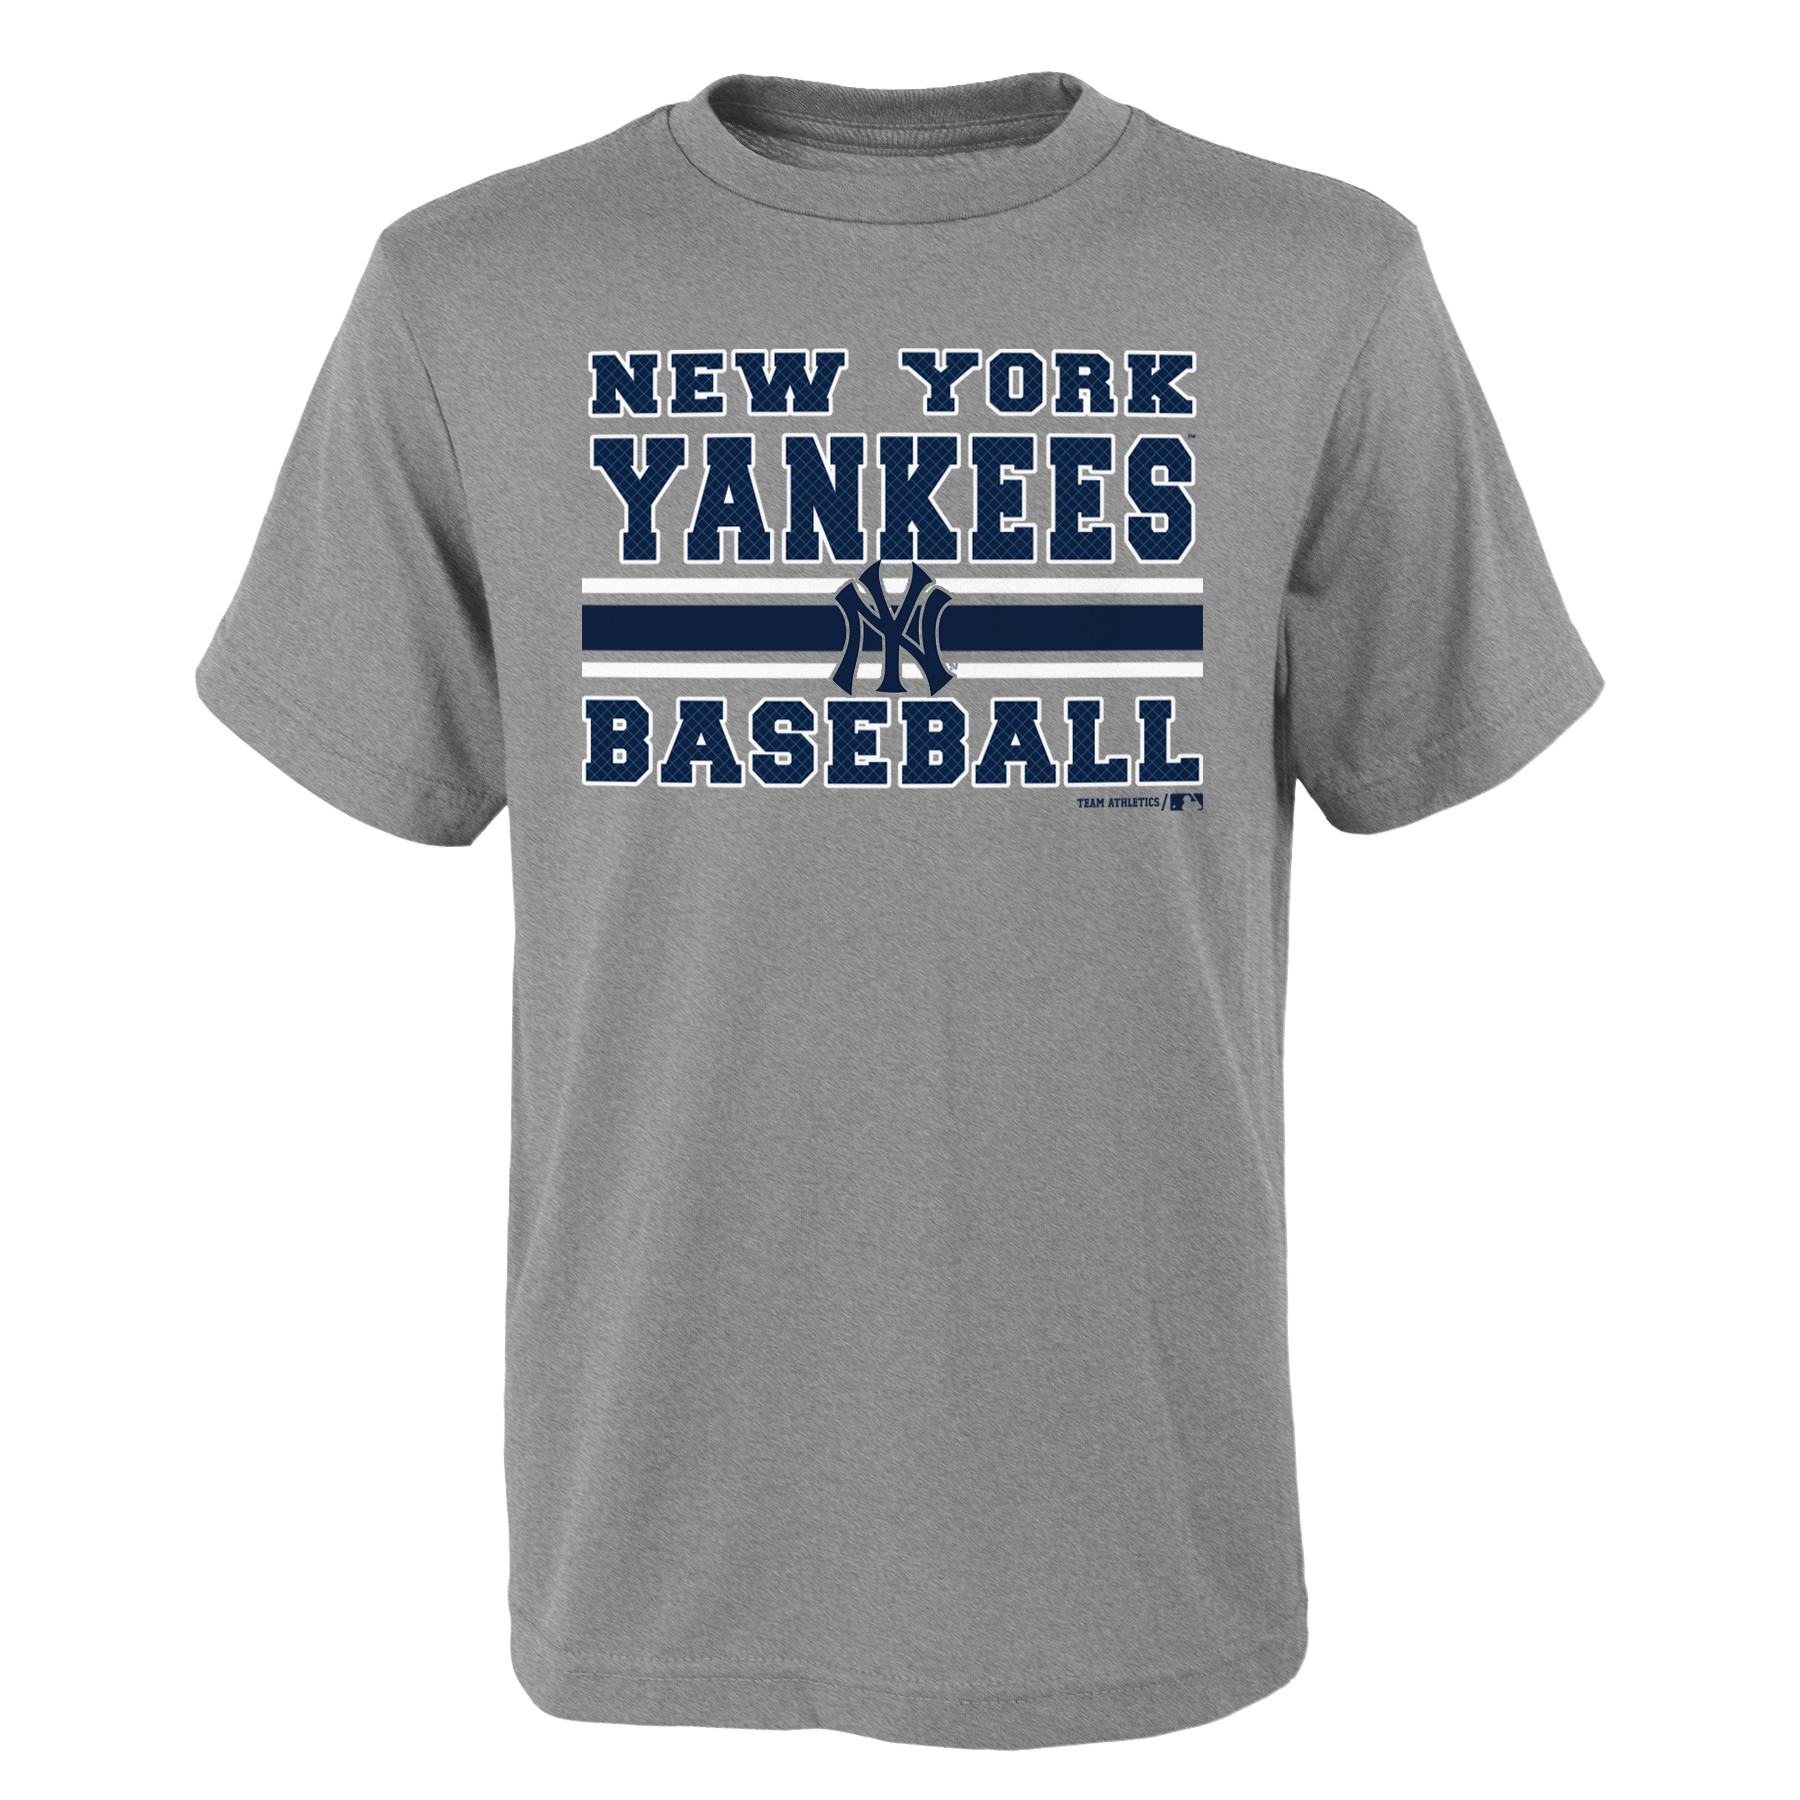 MLB New York YANKEES TEE Short Sleeve Boys OPP 90% Cotton 10% Polyester Gray Team Tee 4-18